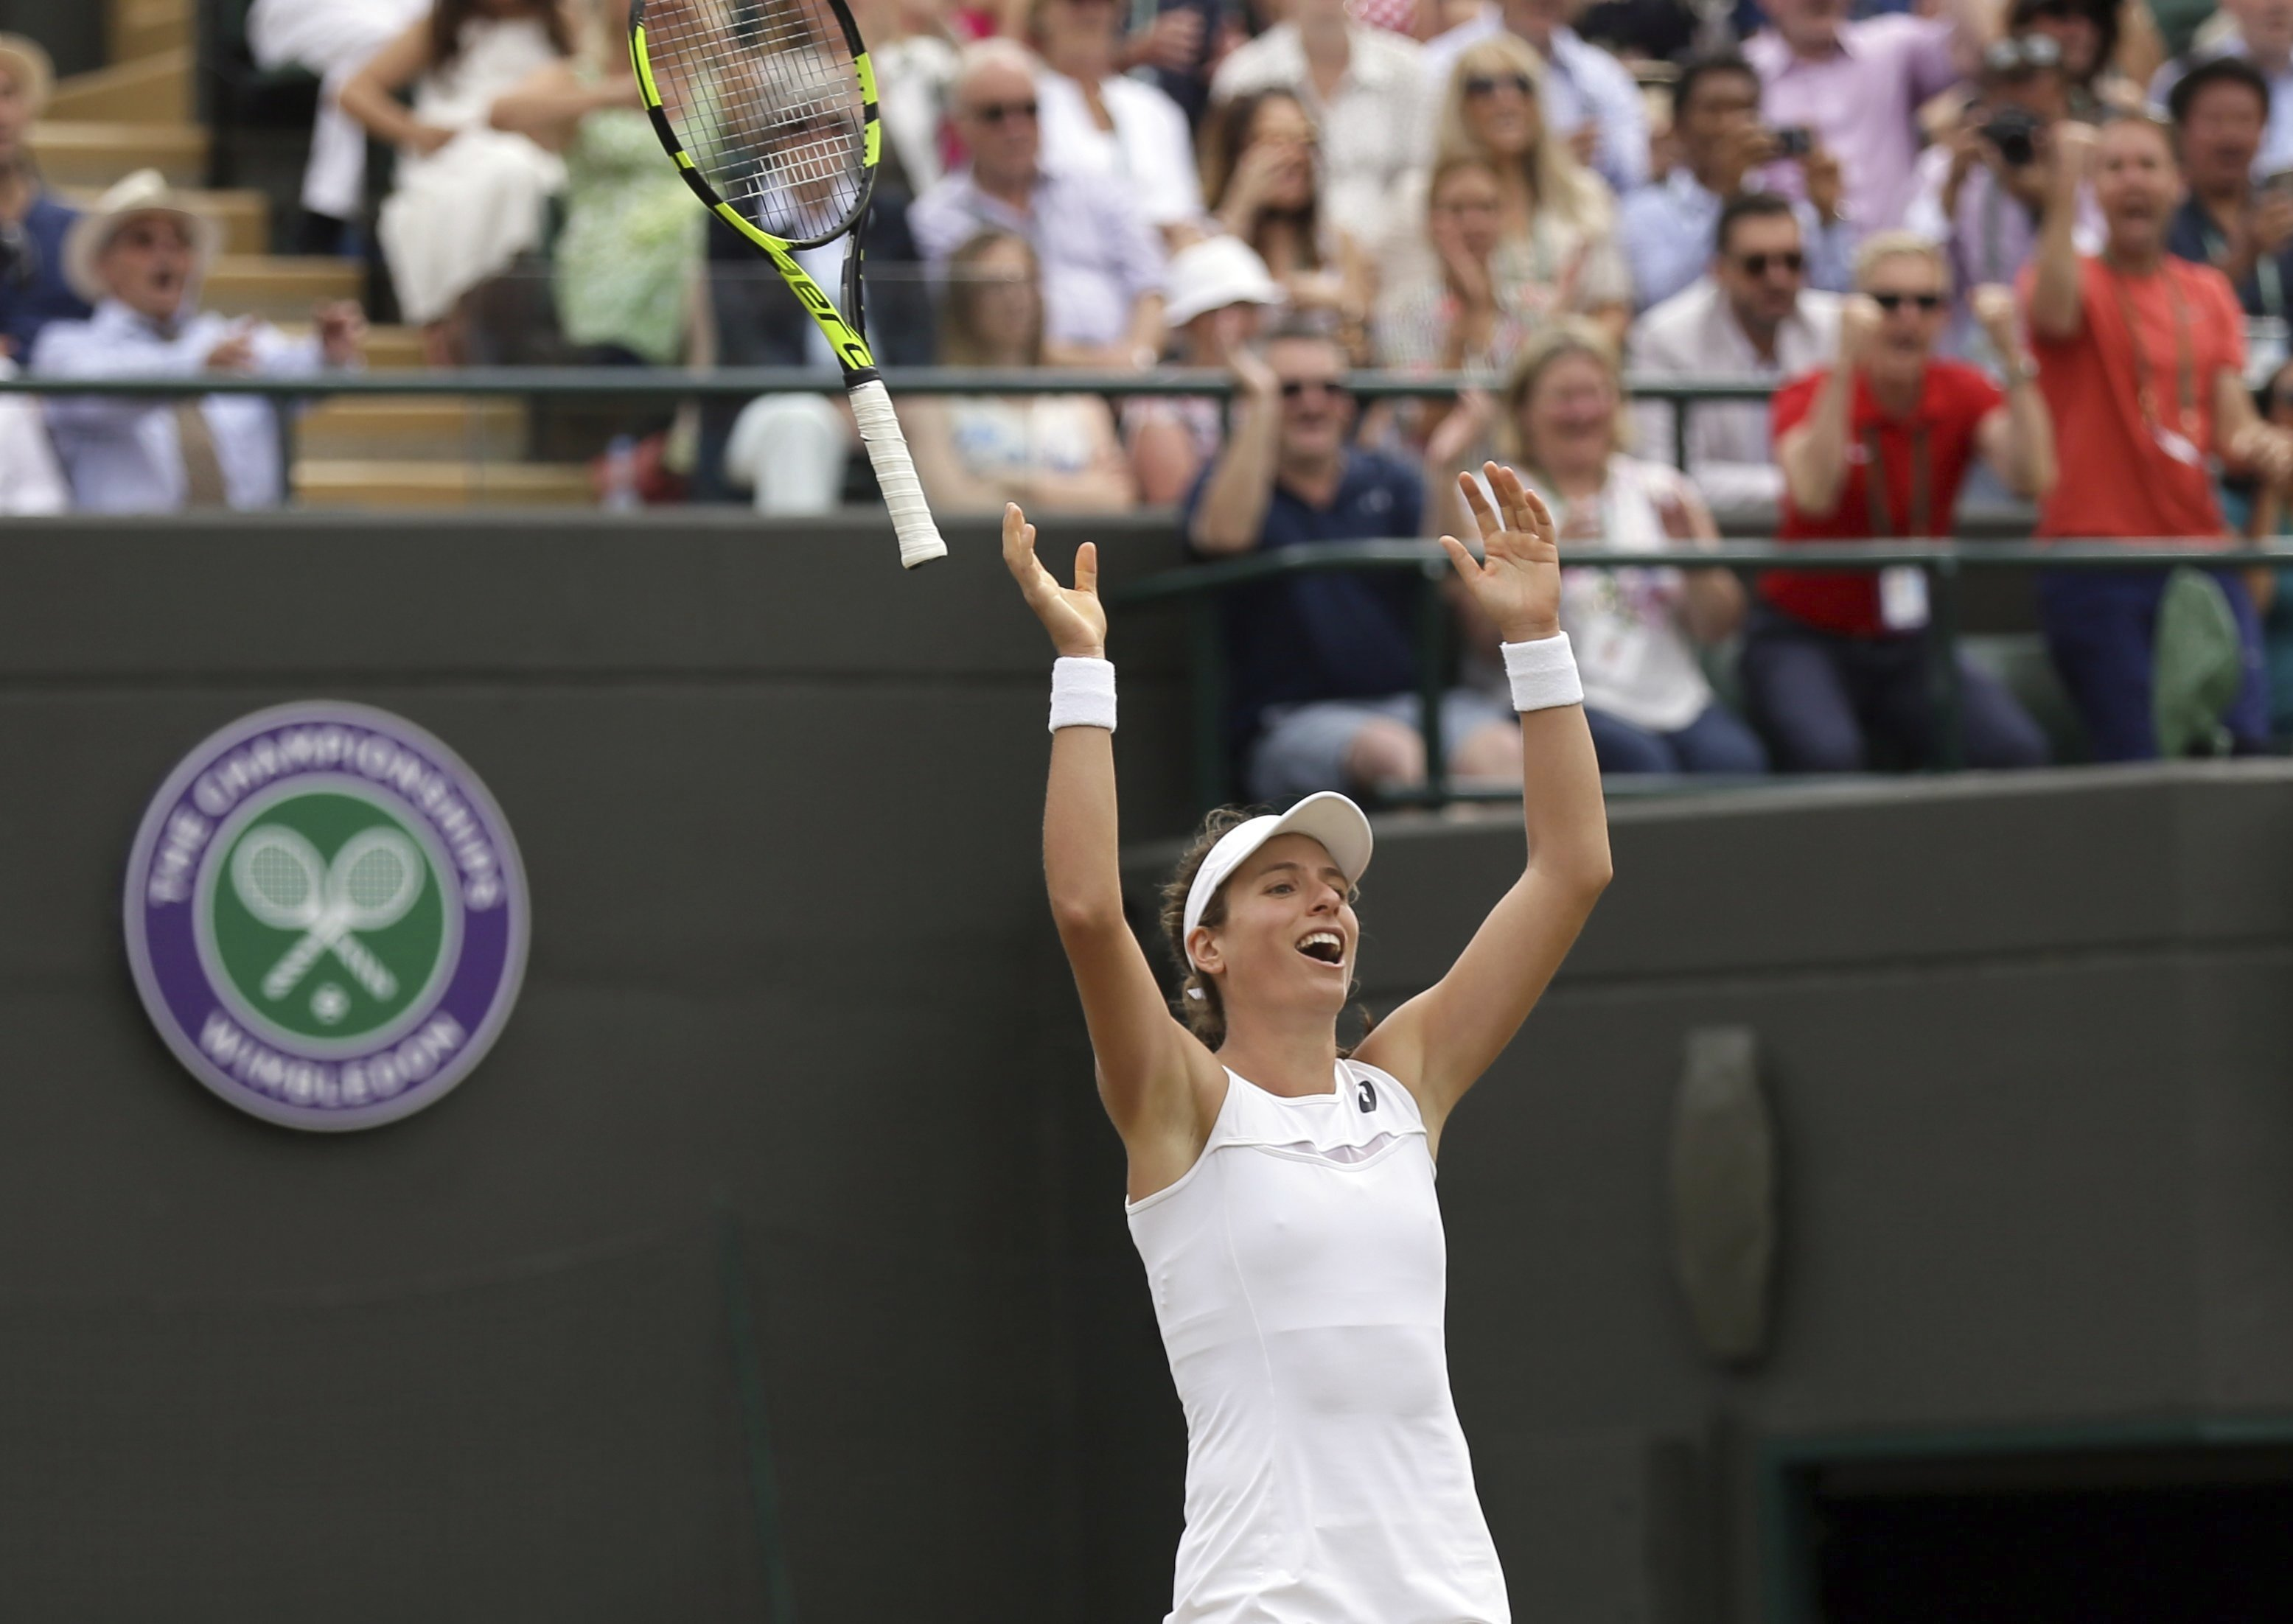 Britain's Johanna Konta celebrates after beating Caroline Garcia of France in their Women's Singles Match on day seven at the Wimbledon Tennis Championships in London Monday, July 10, 2017. (AP Photo/Tim Ireland)